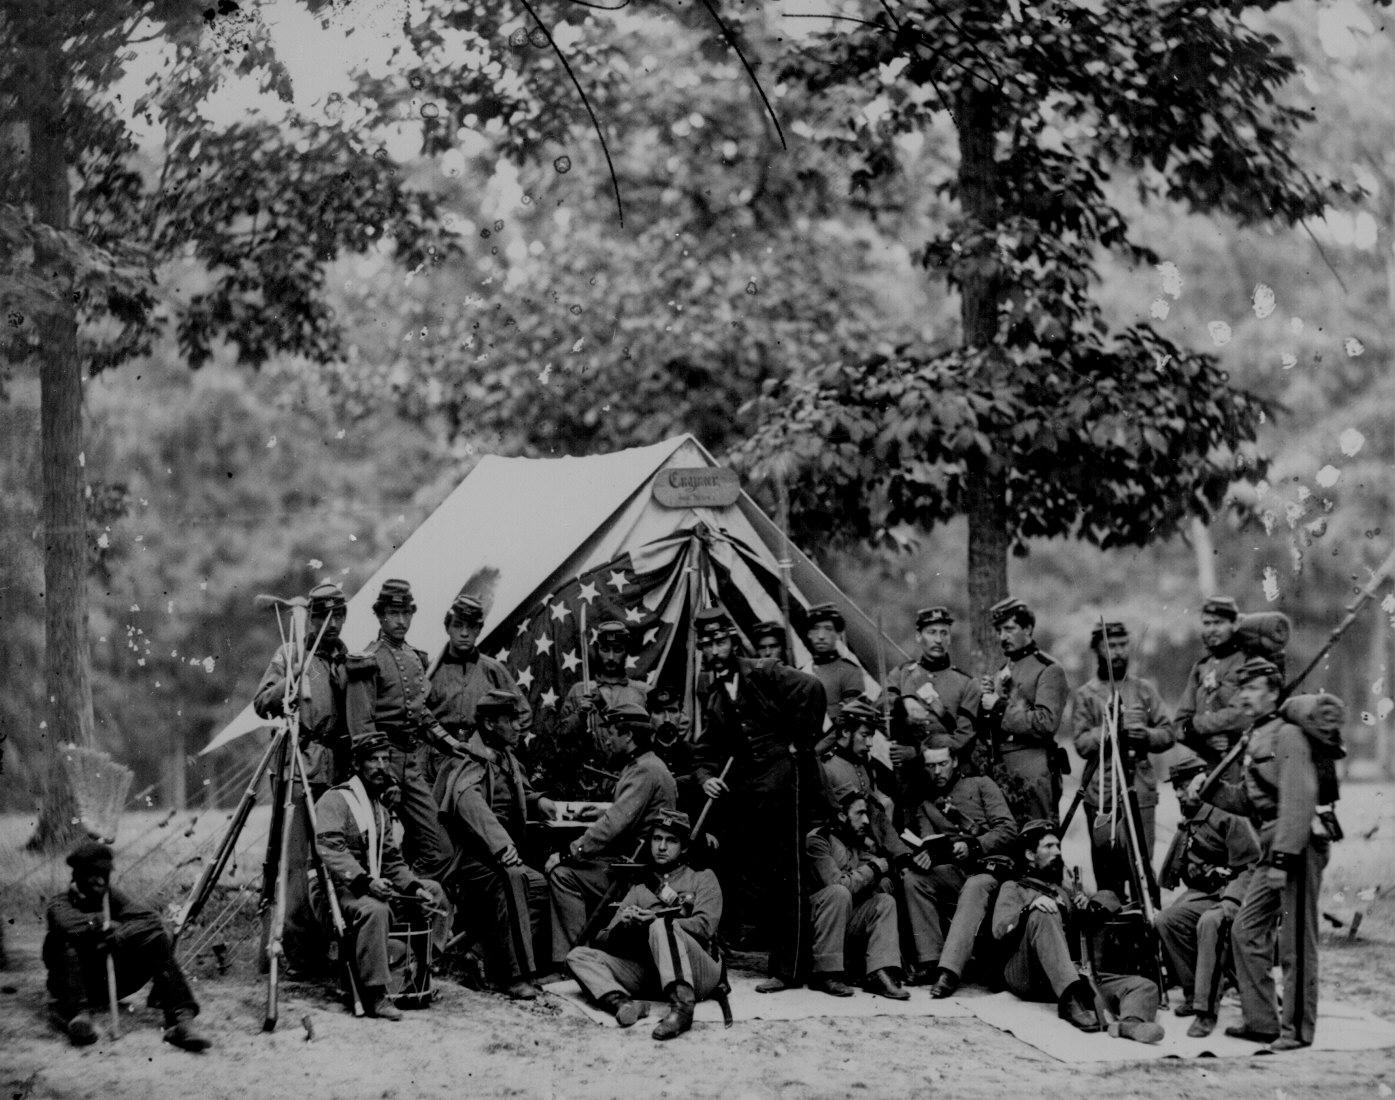 Engineers of the 8th New York State Militia in front of a tent, 1861.